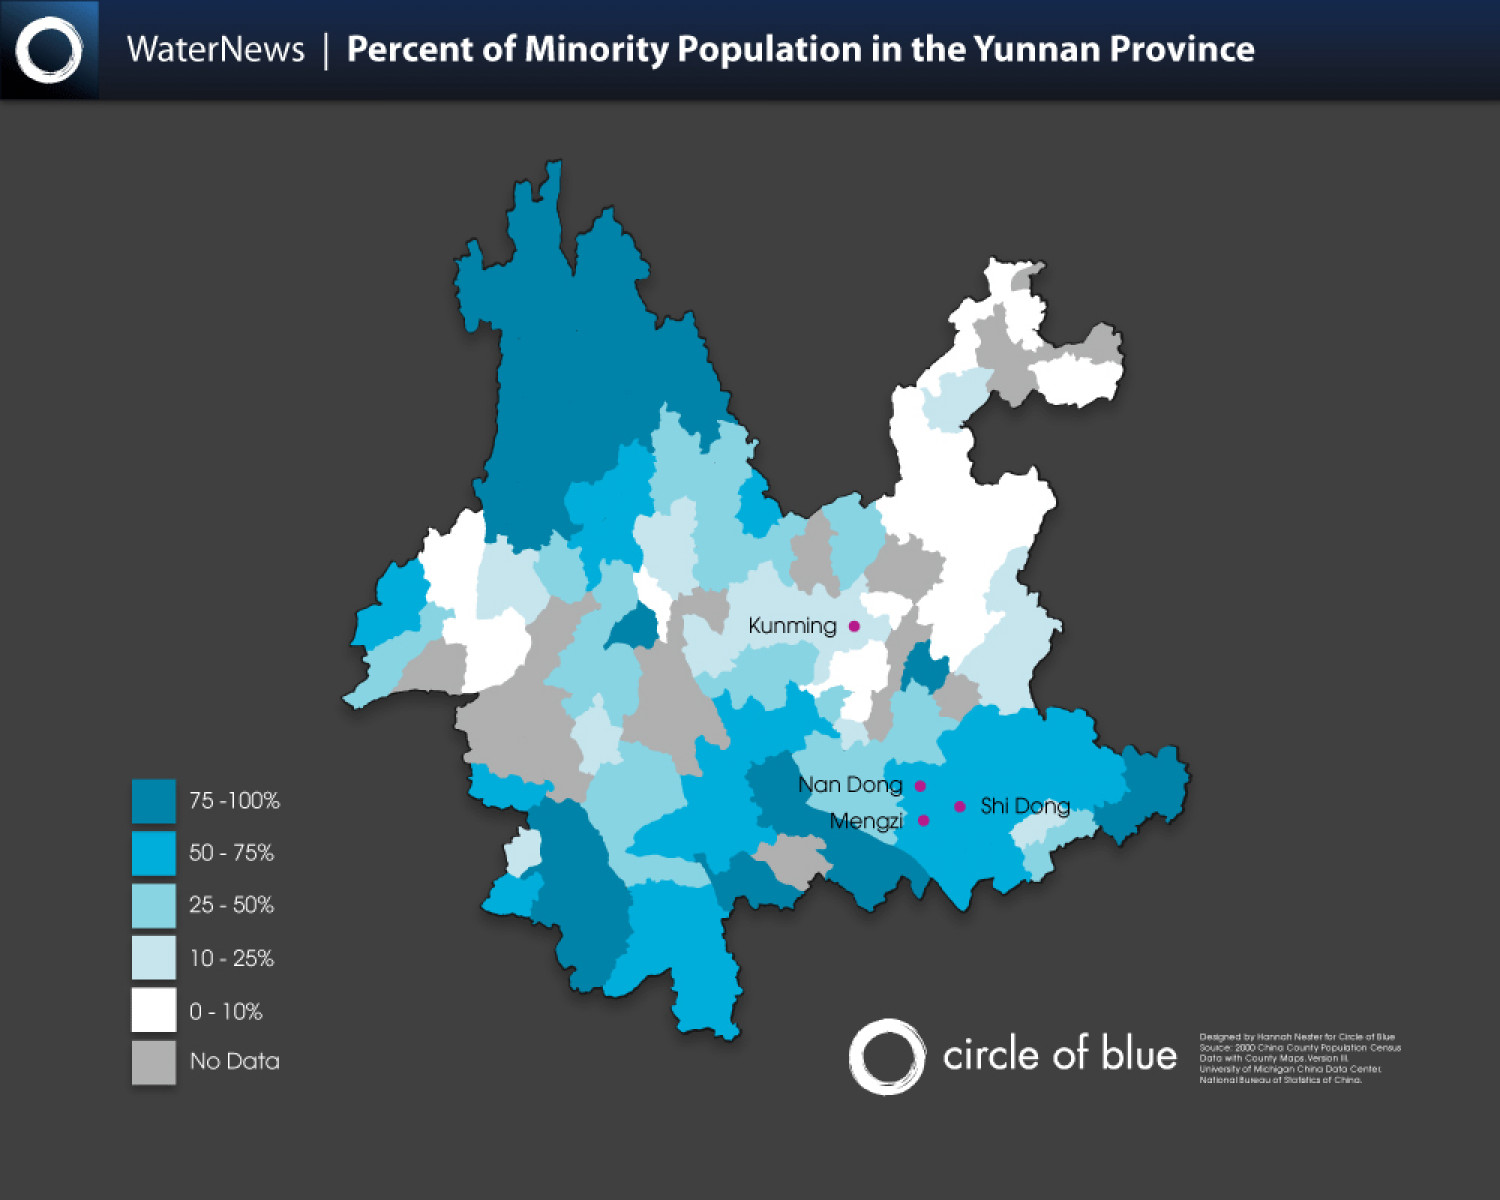 Percent of Minority Population in the Yunnan Province Infographic